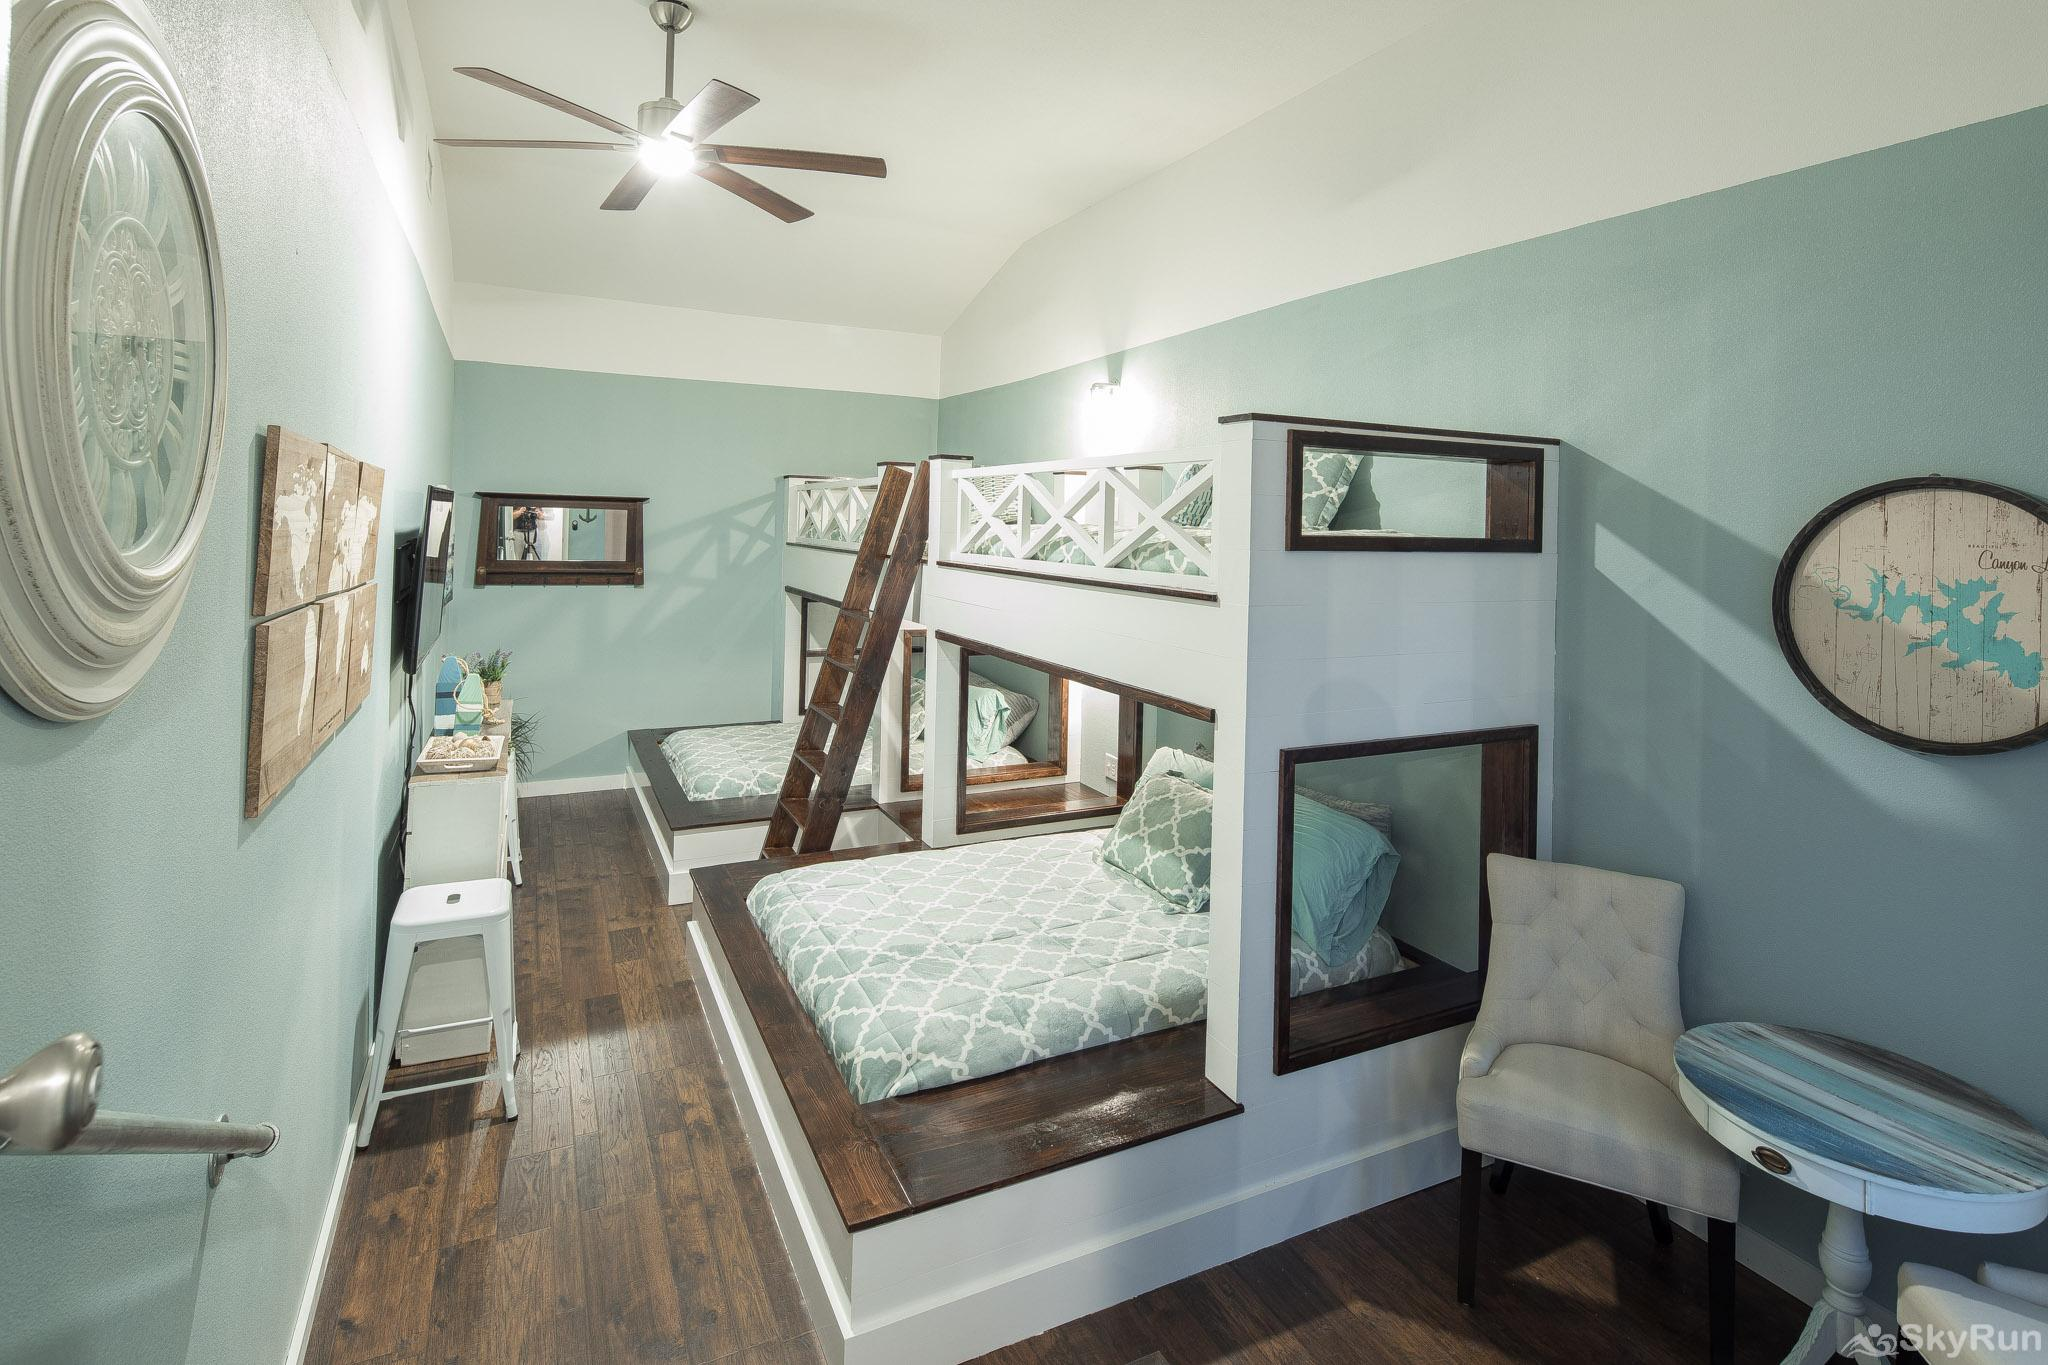 WATERFRONT GRACE Lovely bunk room with custom bunk beds